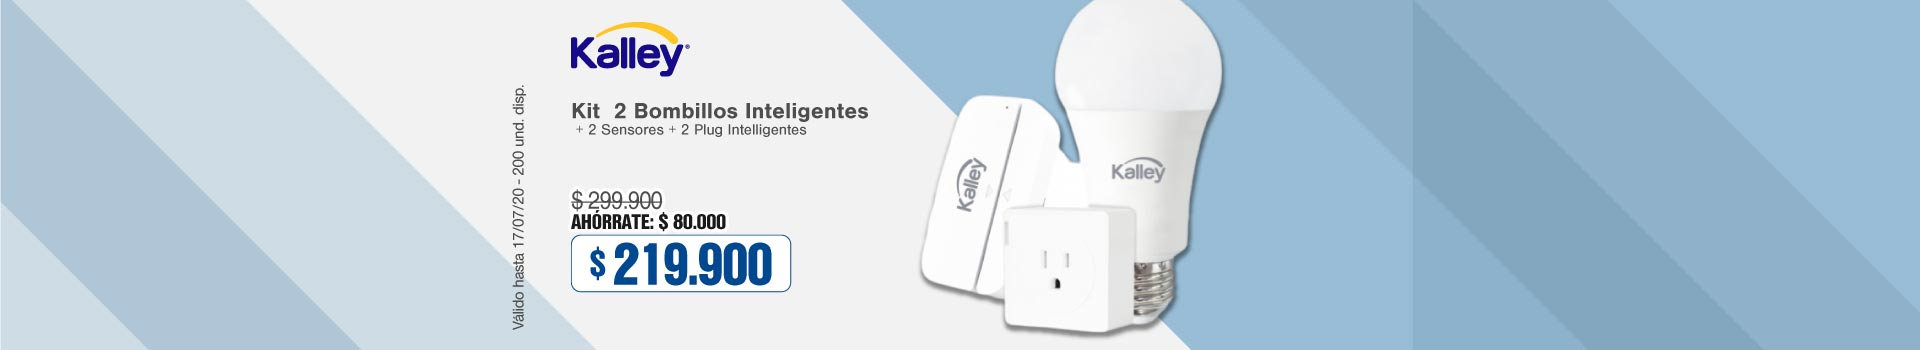 AK-ACCESORIOS-HIPER2-KALLEY-KIT-INTELIGENTE-11JULIO2020